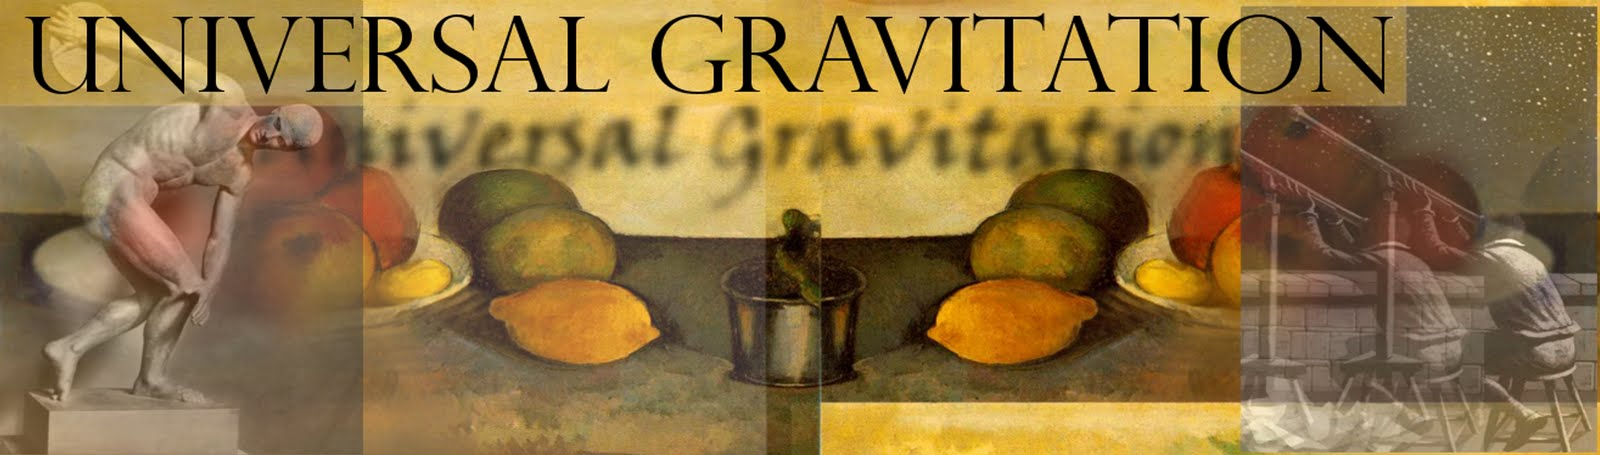 Universal Gravitation